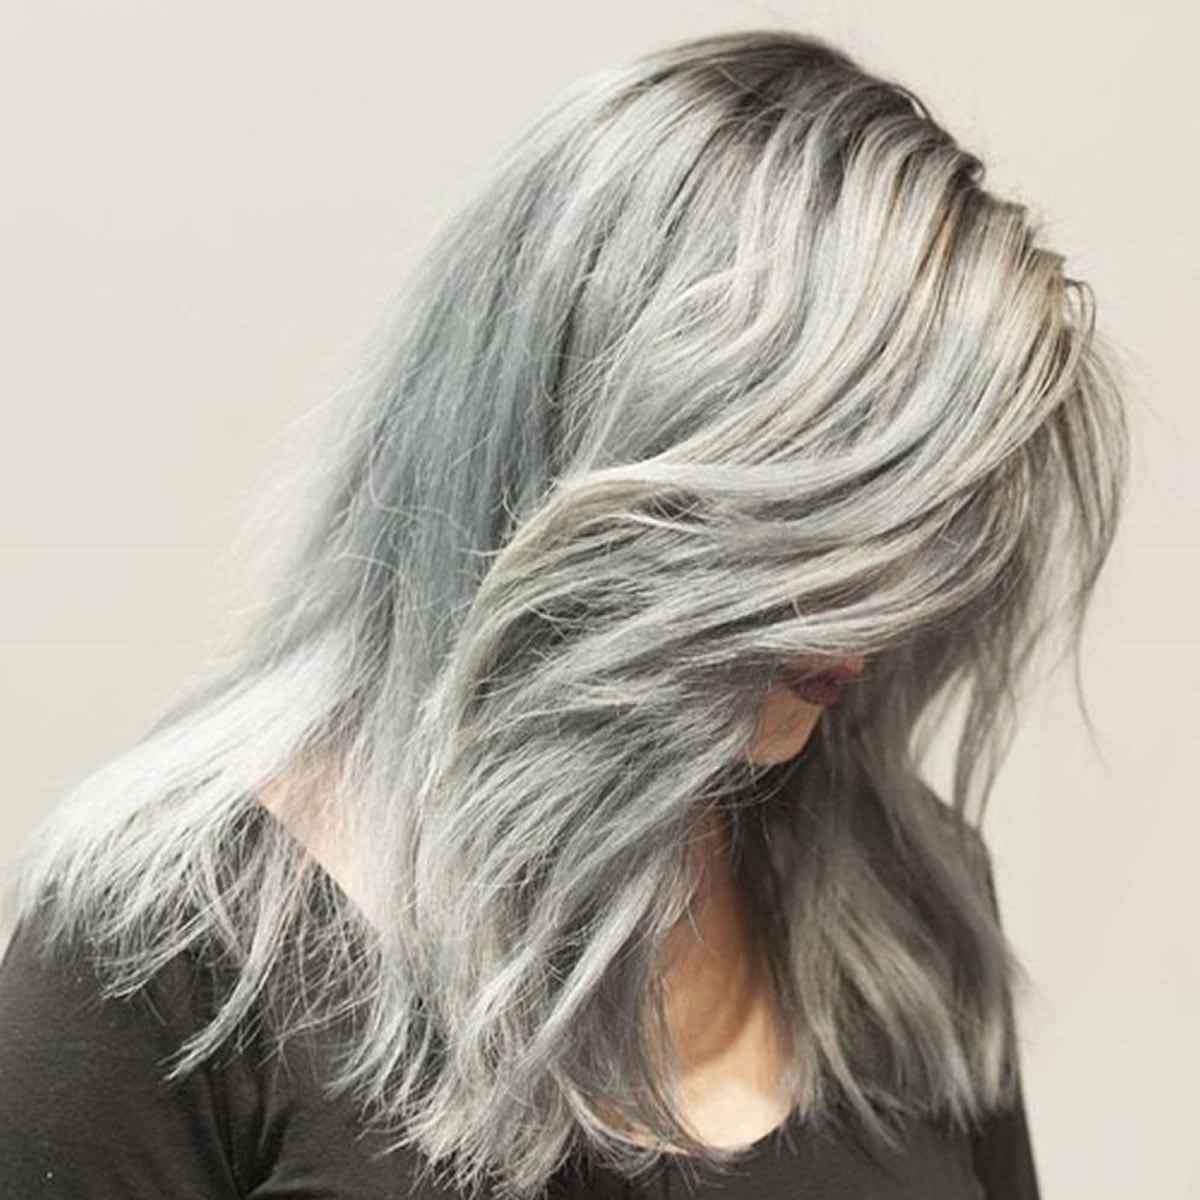 Alluring Long Layered Grey Hairstyles summer 2018-2019 Source